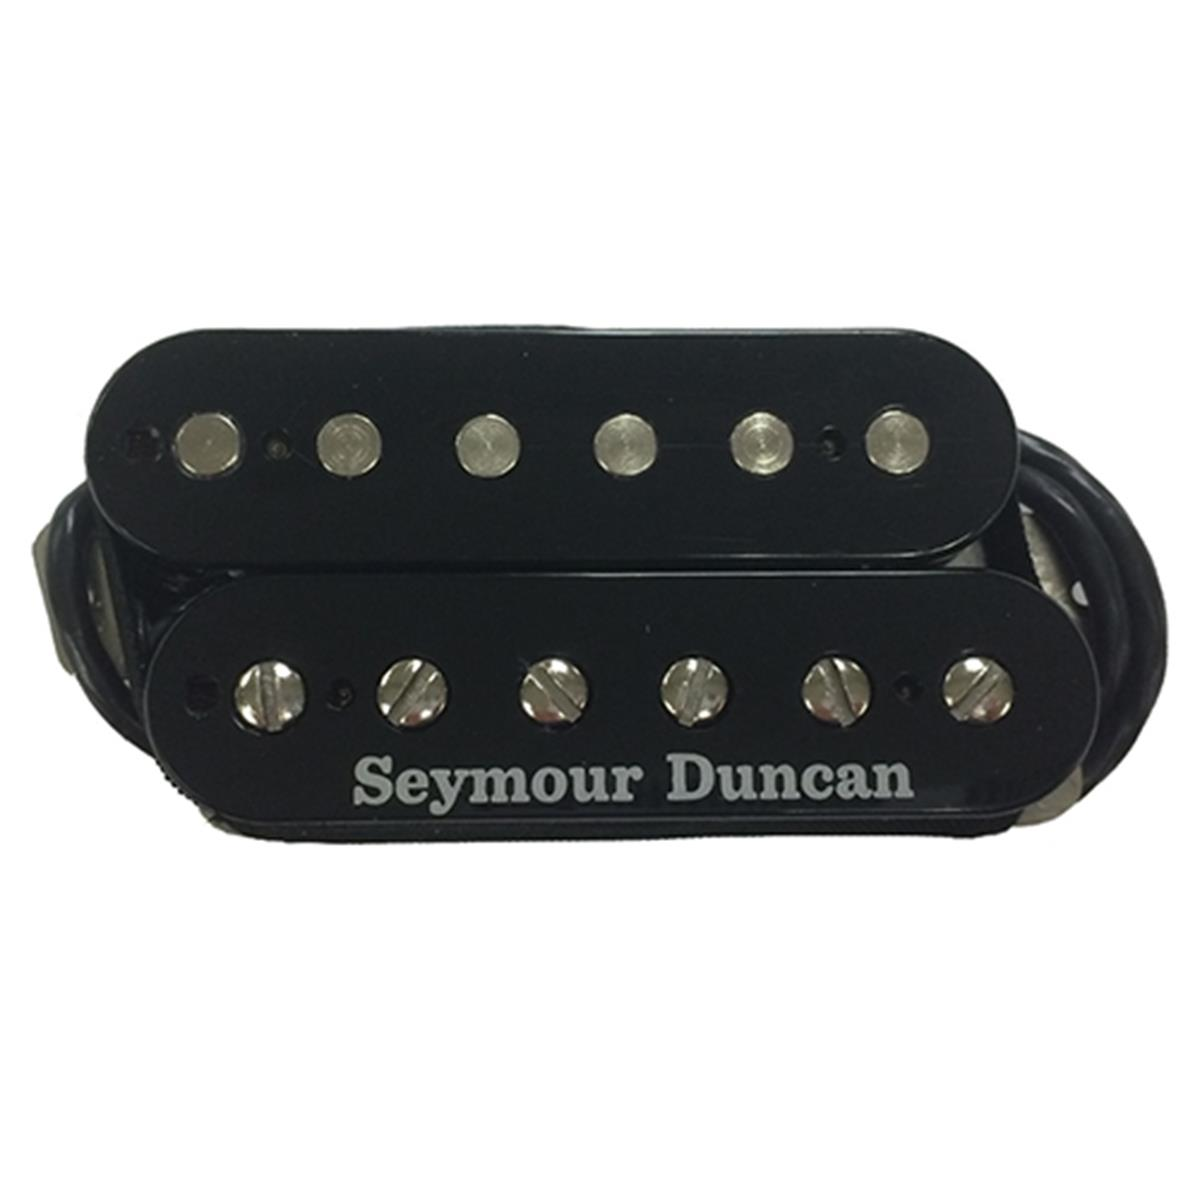 SEYMOUR-DUNCAN SH 4 JB JEFF BECK NIGHTHAWK BRIDGE BLACK 11102-13-NH